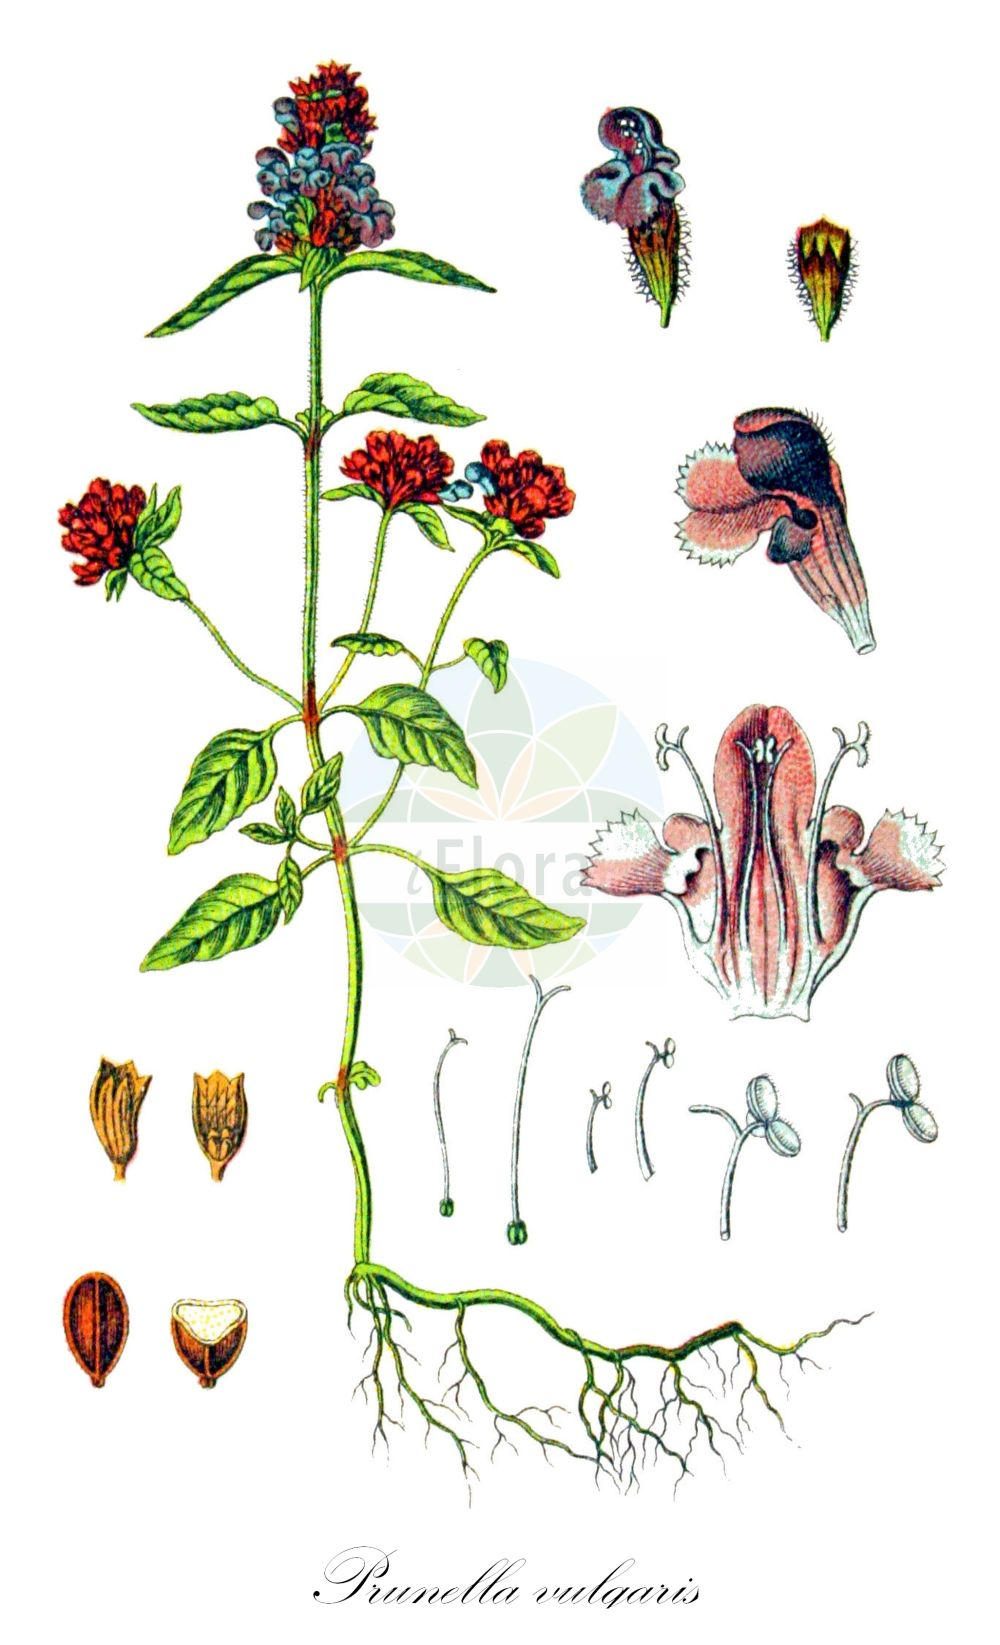 Historische Abbildung von Prunella vulgaris (Gewoehnliche Brunelle - Selfheal). Das Bild zeigt Blatt, Bluete, Frucht und Same. ---- Historical Drawing of Prunella vulgaris (Gewoehnliche Brunelle - Selfheal).The image is showing leaf, flower, fruit and seed.(Prunella vulgaris,Gewoehnliche Brunelle,Selfheal,Kleine Braunelle,Common Heal-all,Prunella,Braunelle,Selfheal,Lamiaceae,Lippenbluetengewaechse;Lippenbluetler,Nettle family,Blatt,Bluete,Frucht,Same,leaf,flower,fruit,seed,Sturm (1796f))